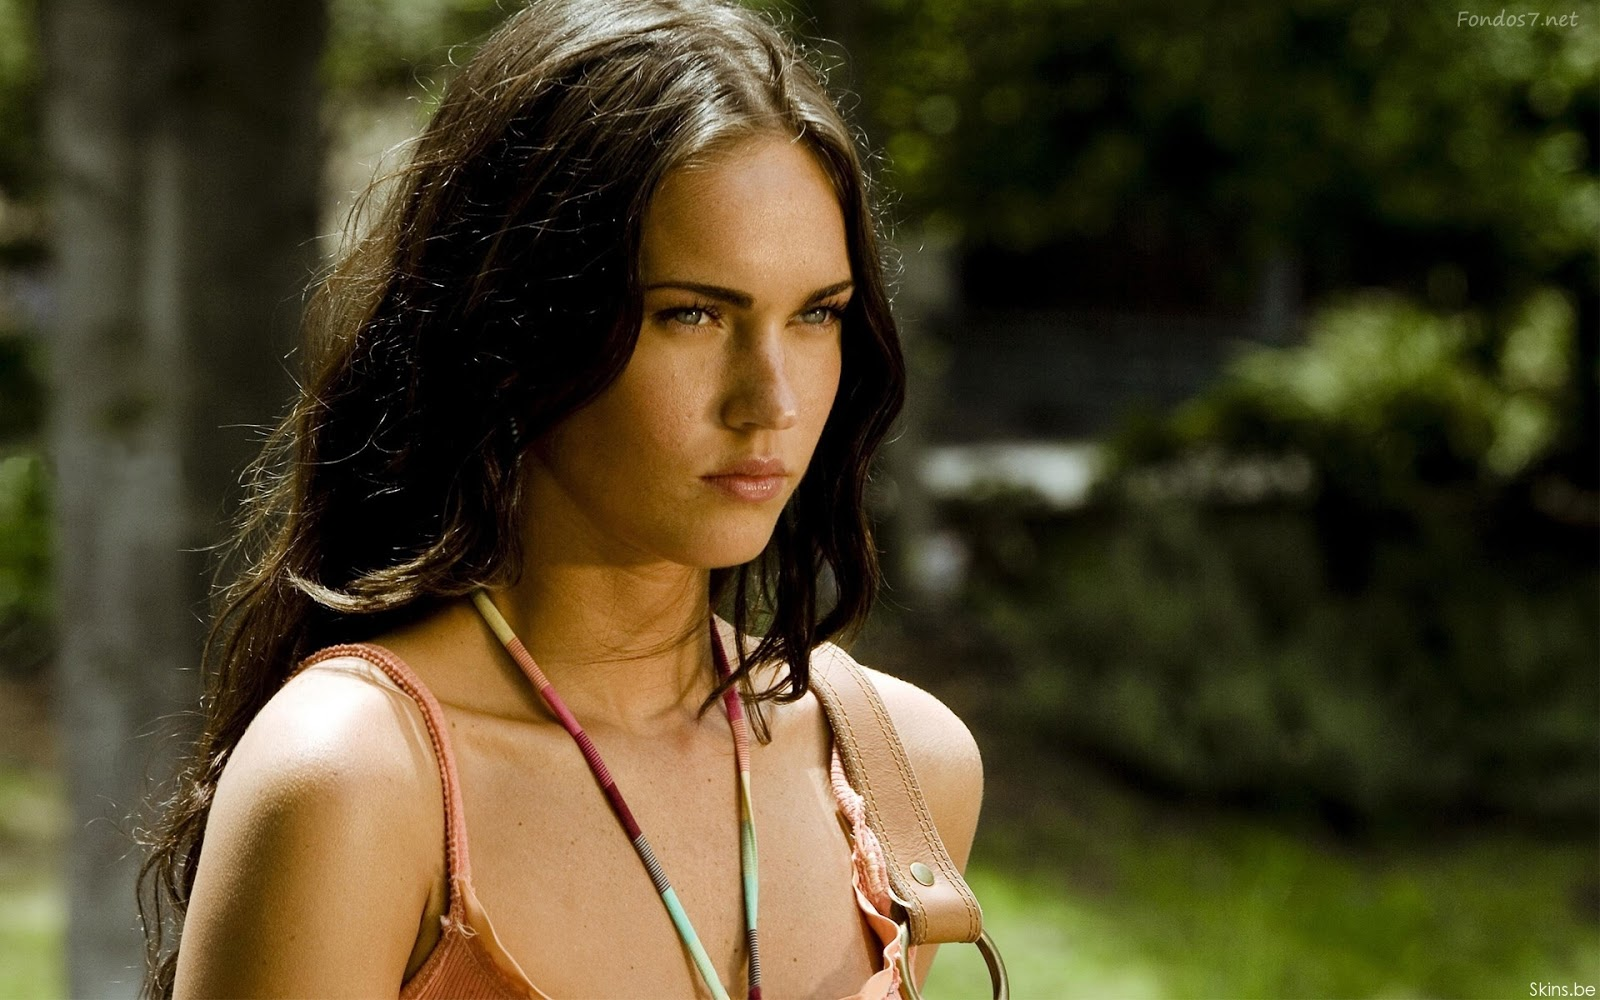 Online Wallpapers Shop Megan Fox Wallpapers: Chatter Busy: Megan Fox Hd Wallpapers